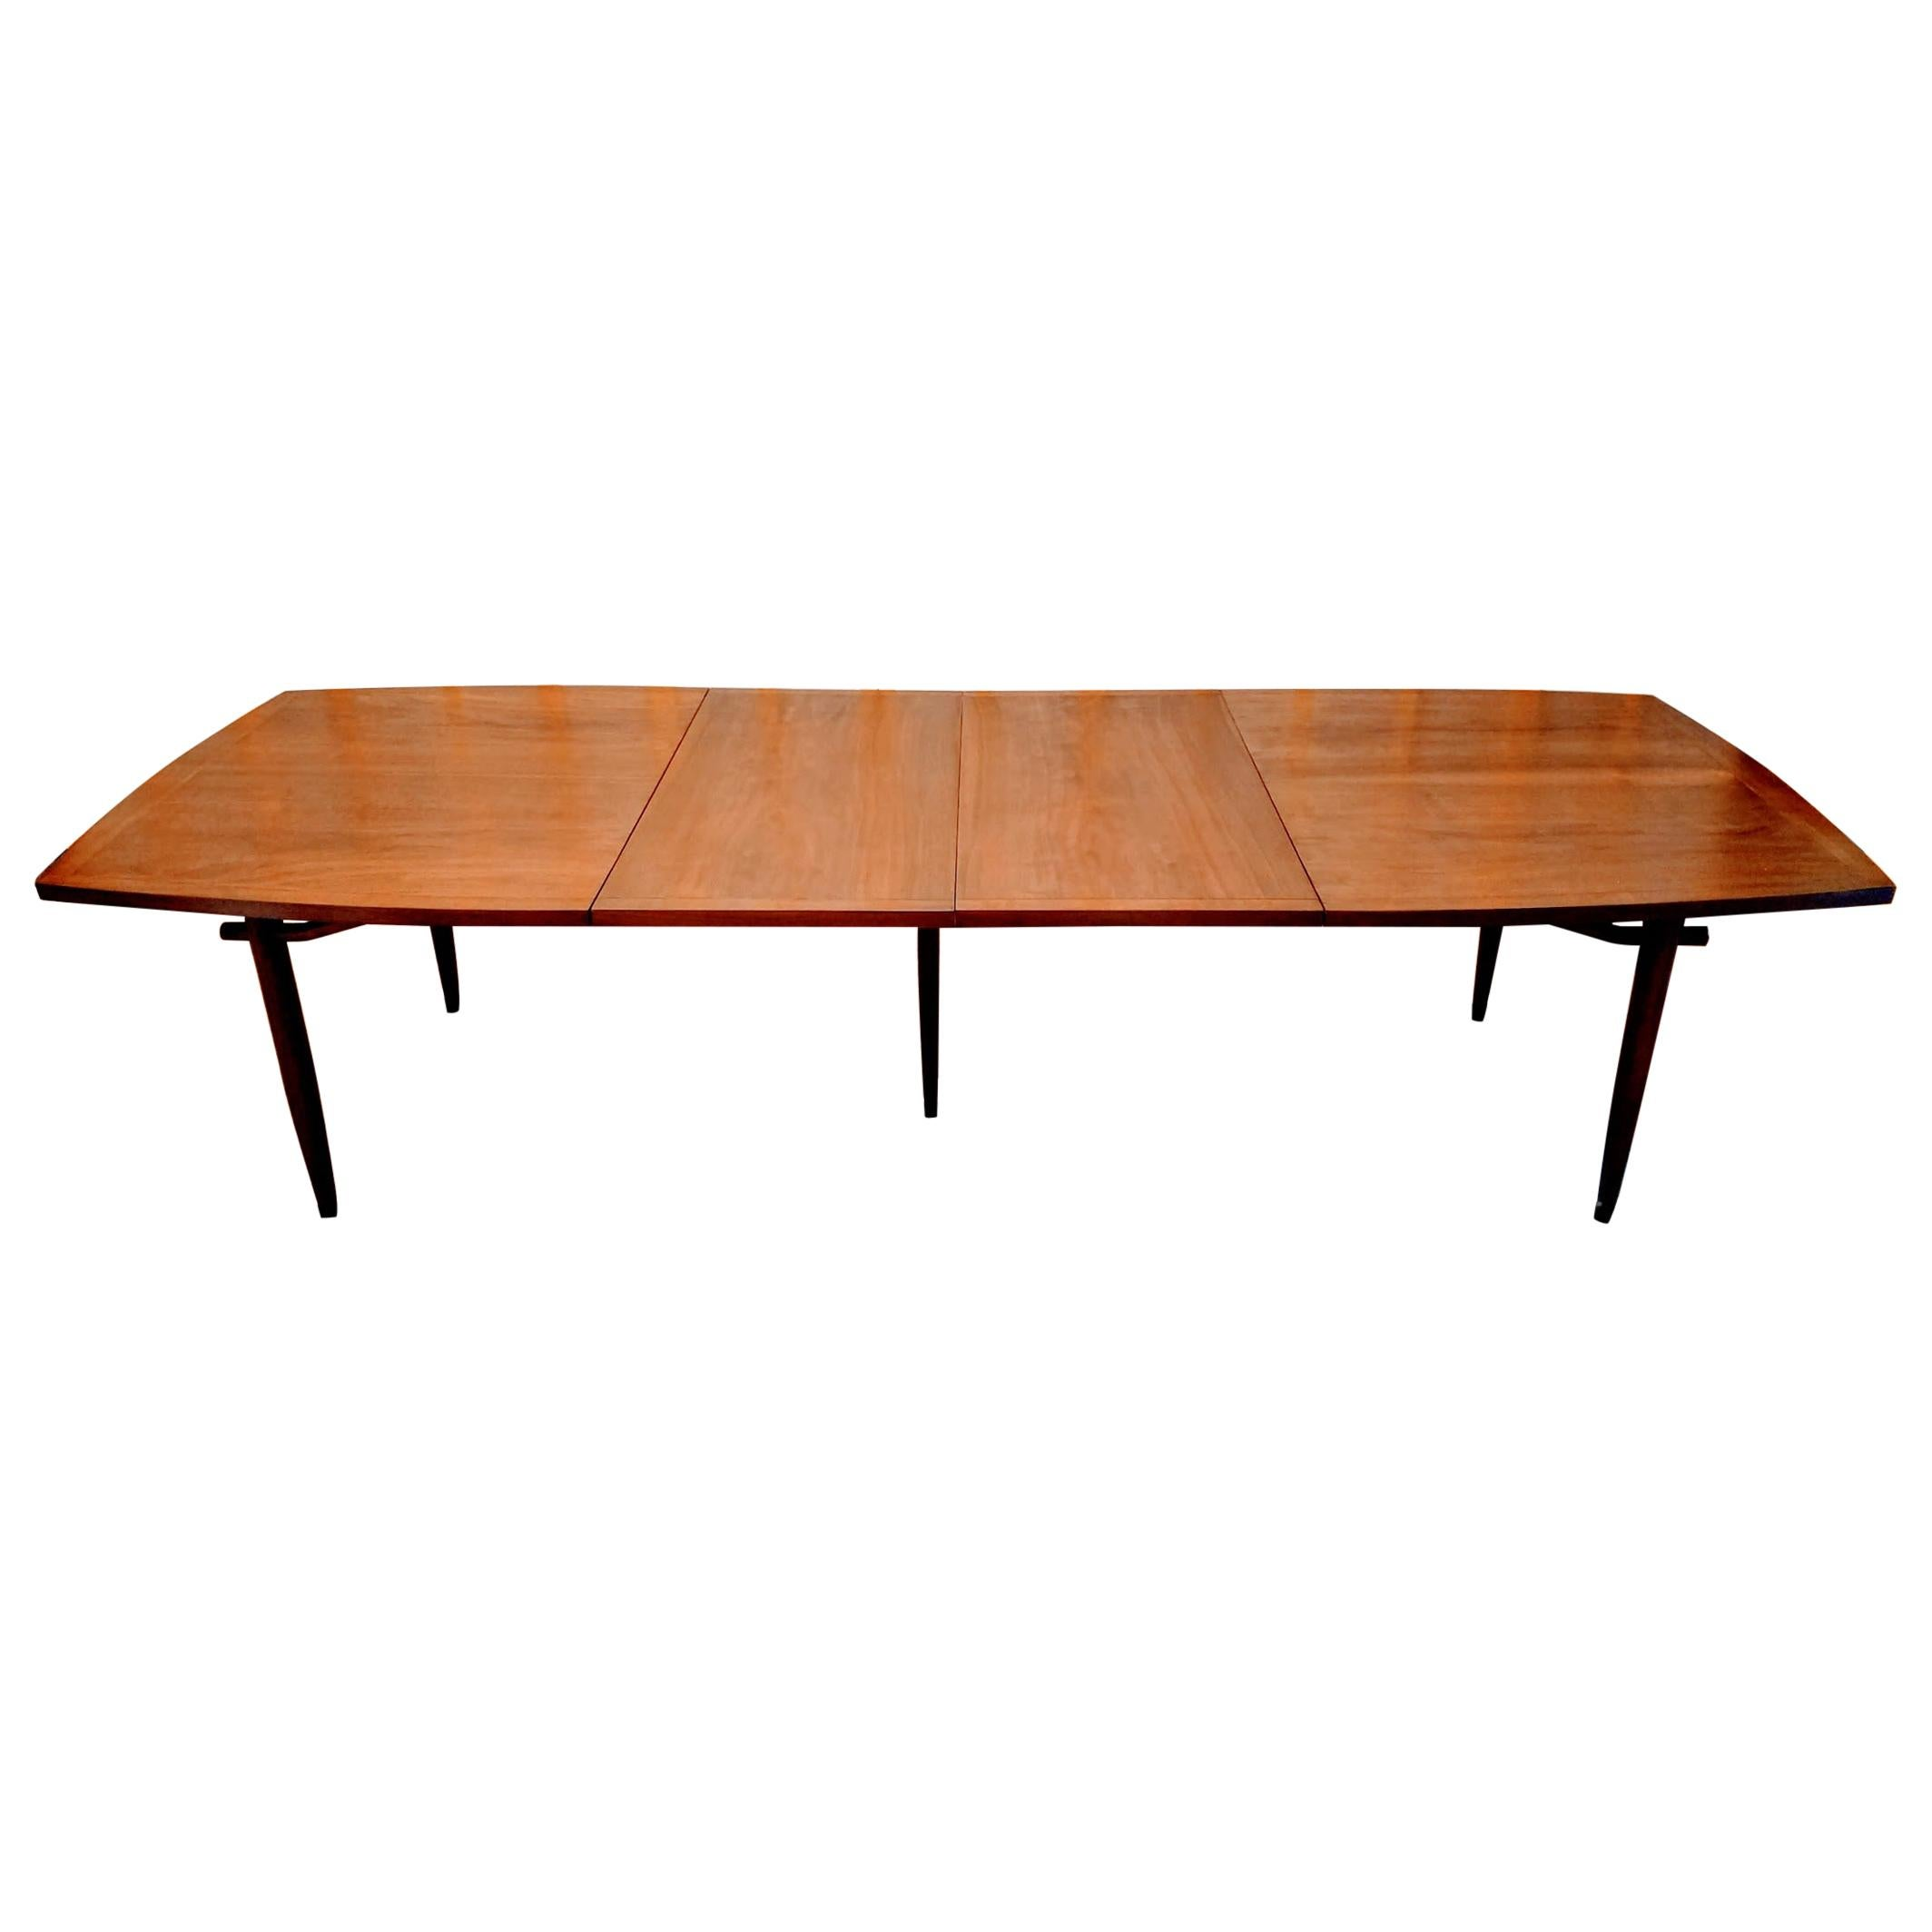 George Nakashima Dining Table Model 202 for Widdicomb 1959 Two Leaves